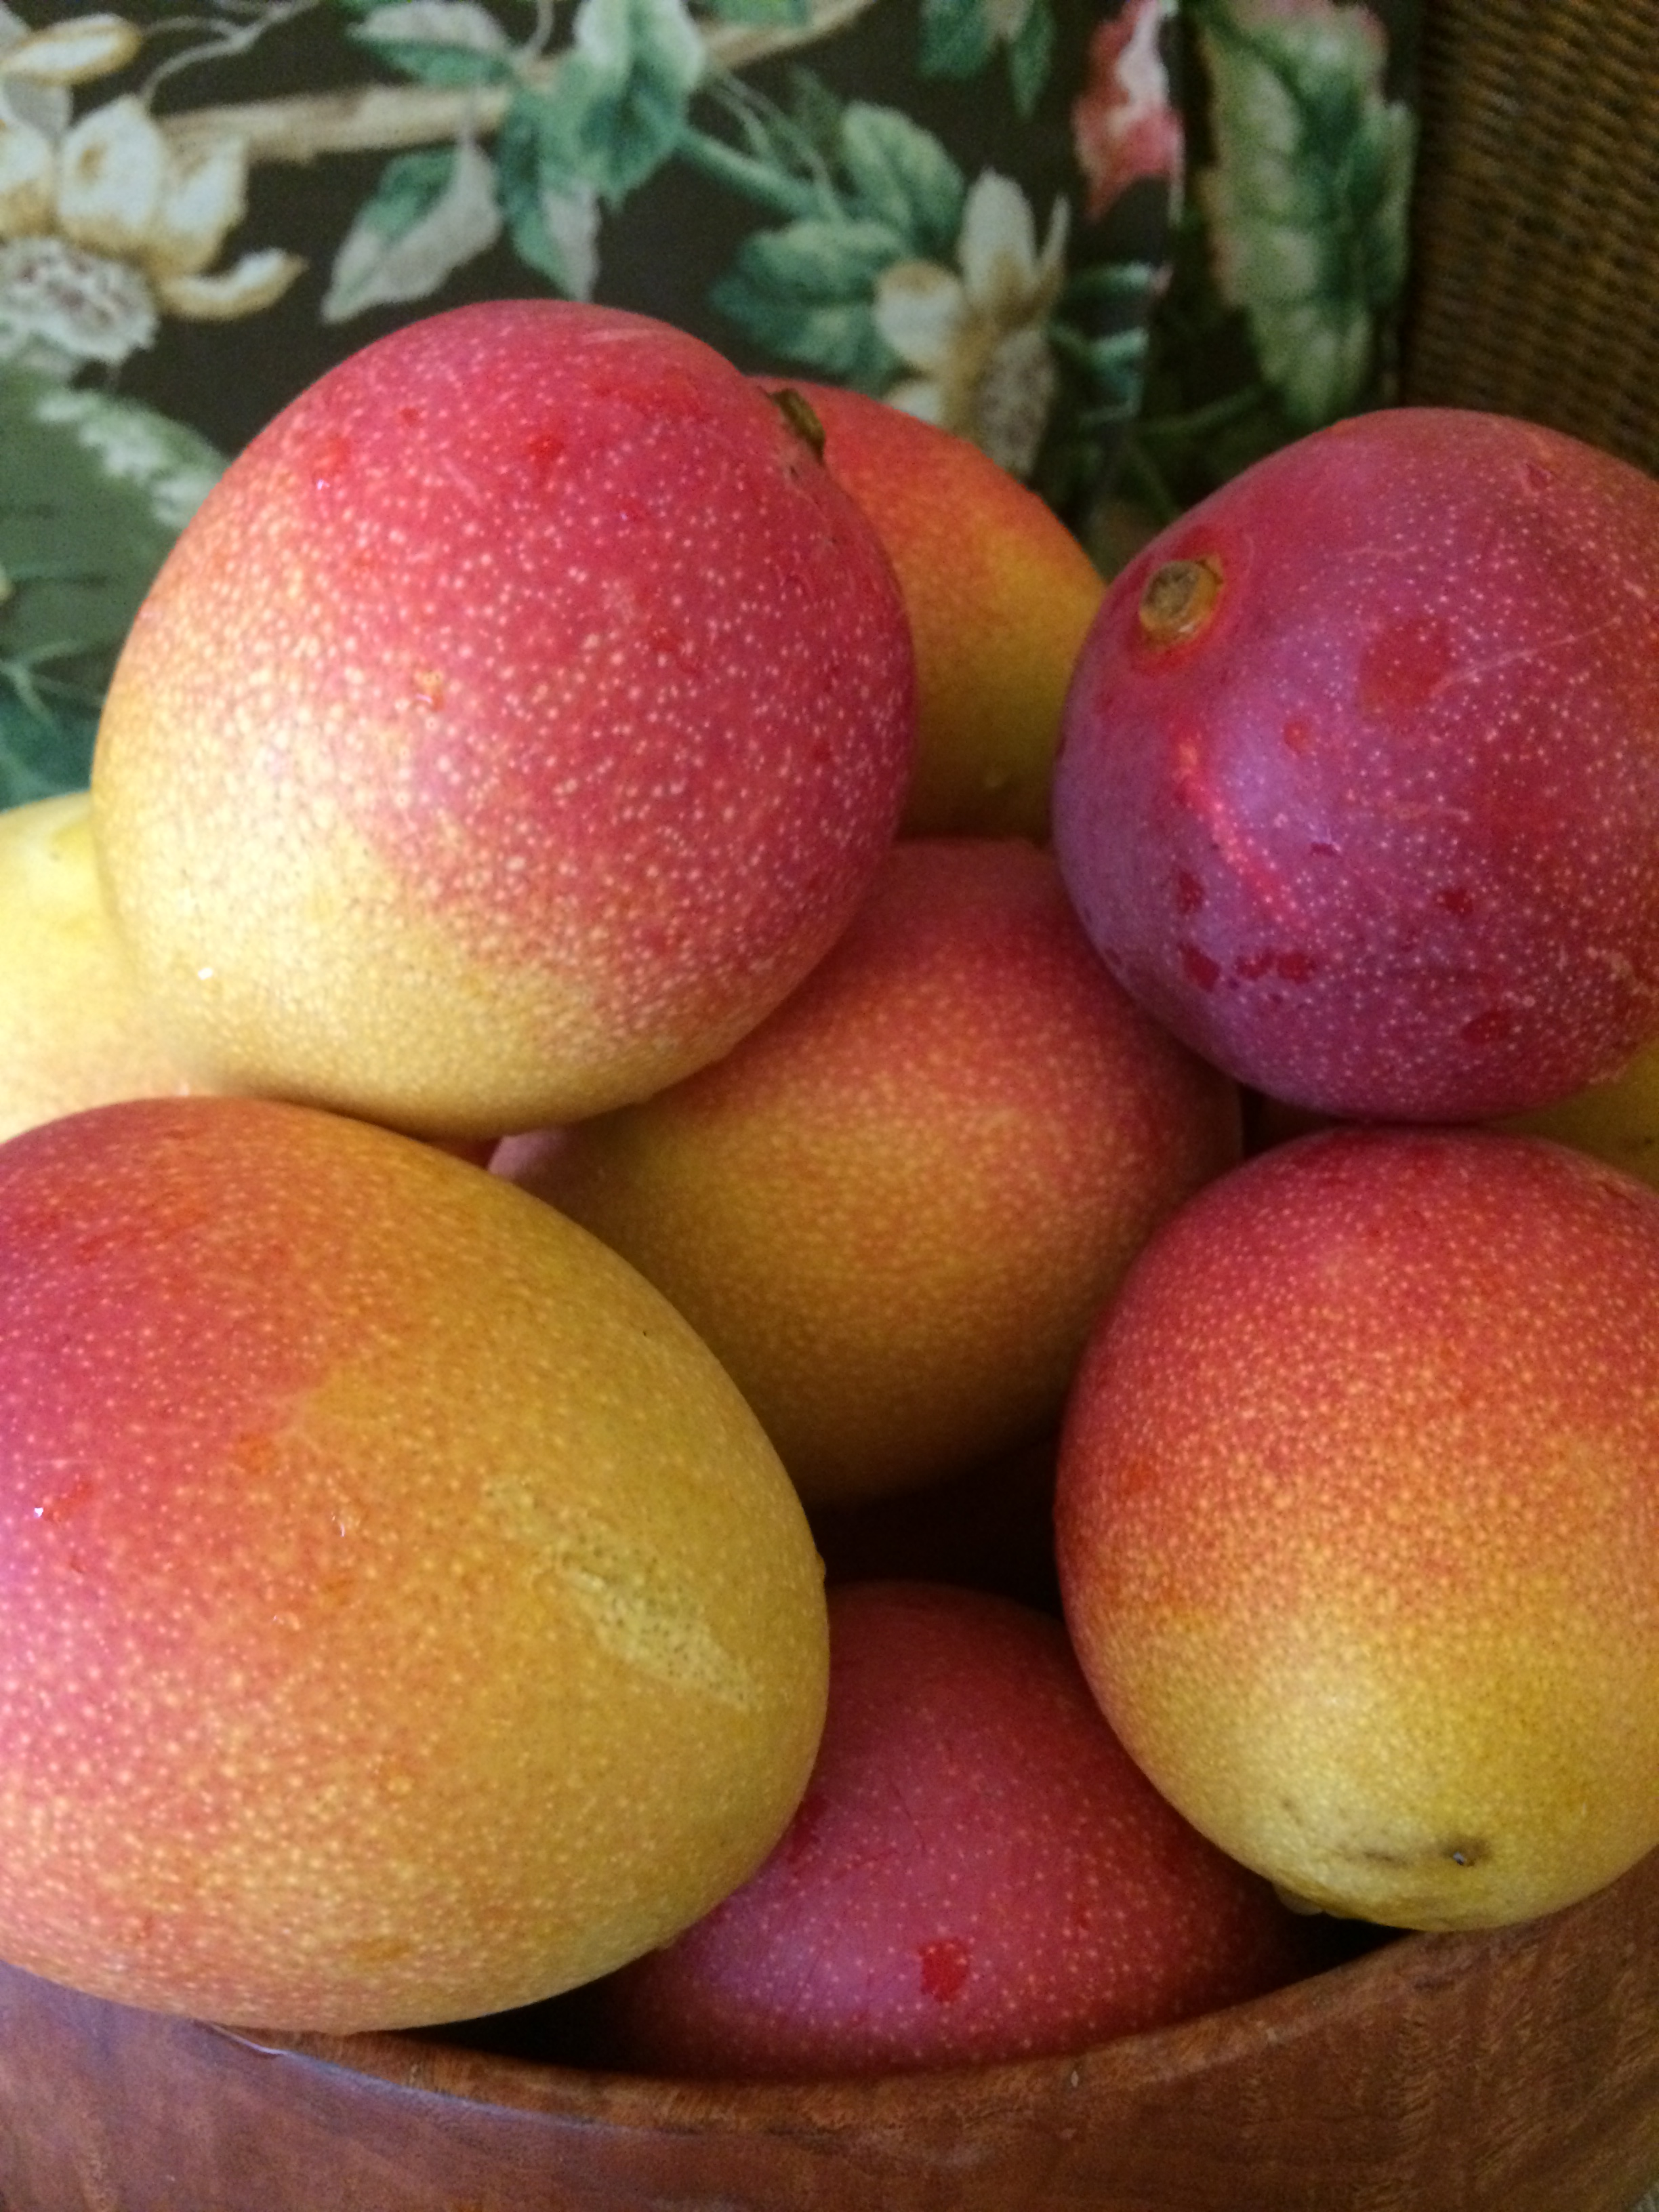 Local Miami Mangos from Miami Shores